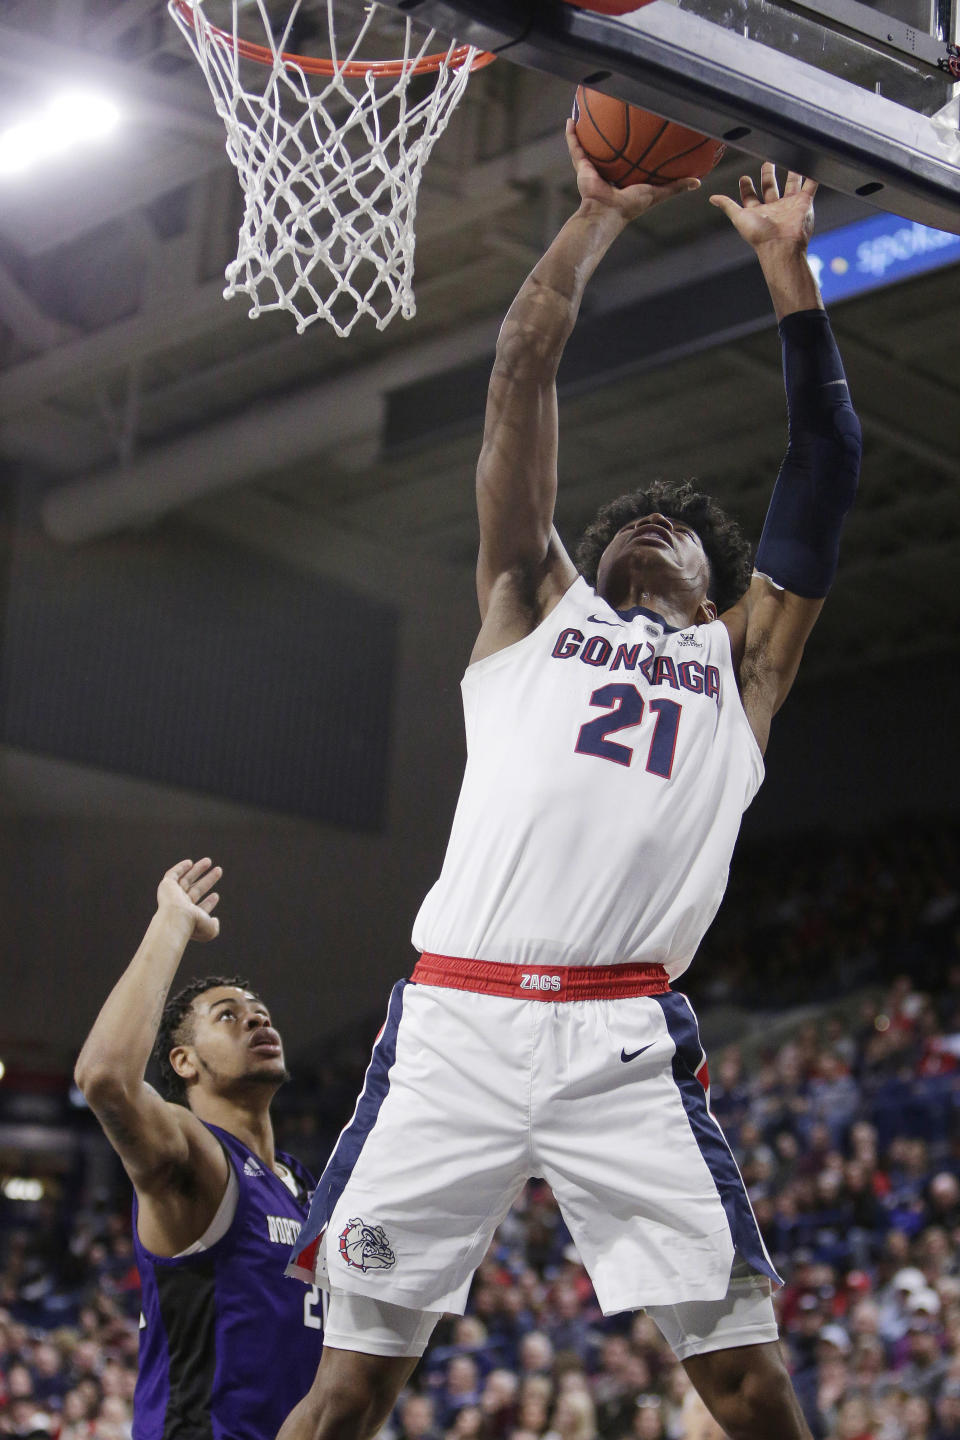 Gonzaga forward Rui Hachimura (21) shoots in front of North Alabama forward Emanuel Littles during the first half of an NCAA college basketball game in Spokane, Wash., Friday, Dec. 28, 2018. (AP Photo/Young Kwak)